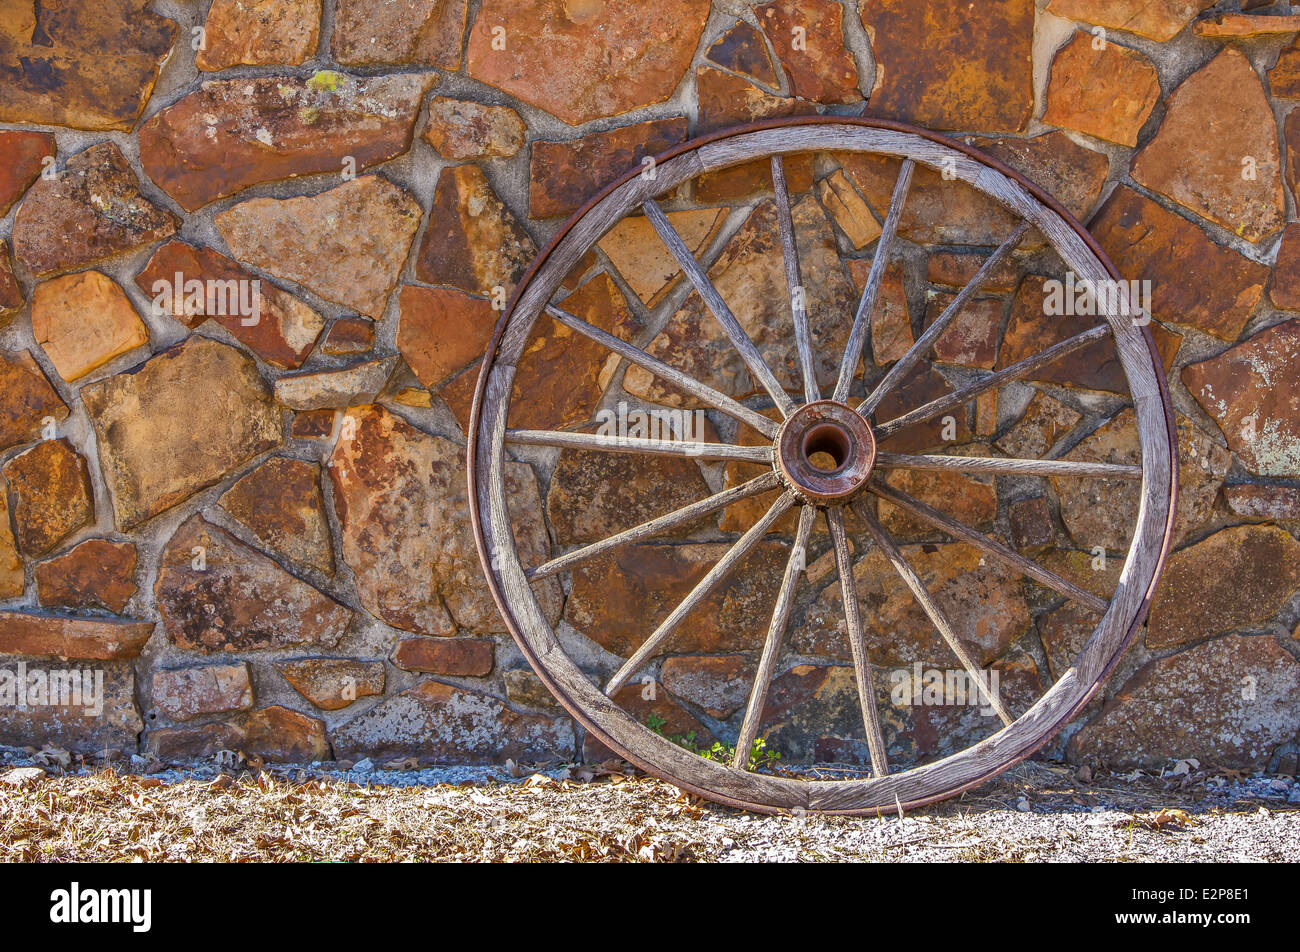 An old wagon wheel against a stone wall - Stock Image